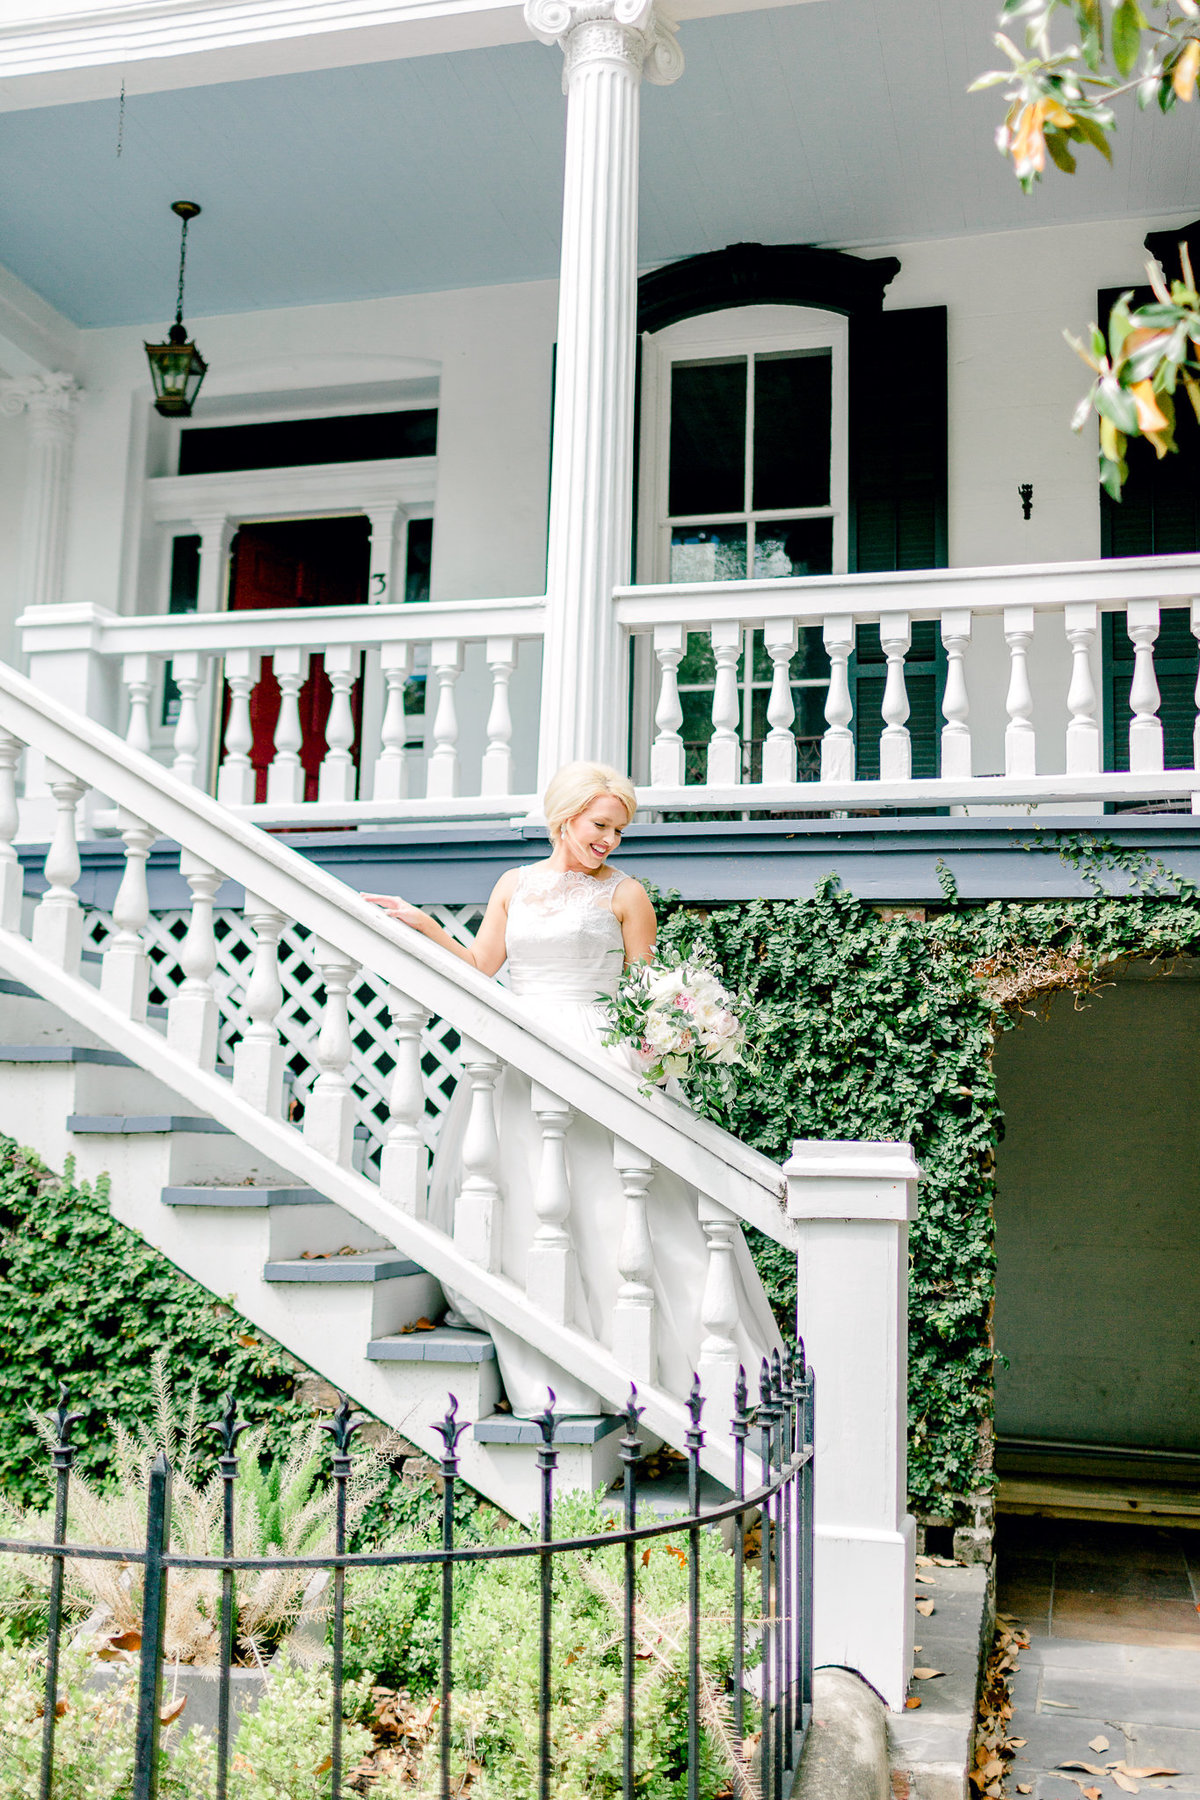 Savannah-Georgia-Wedding-Photographer-Holly-Felts-Photography-Wilmon-Wedding-186